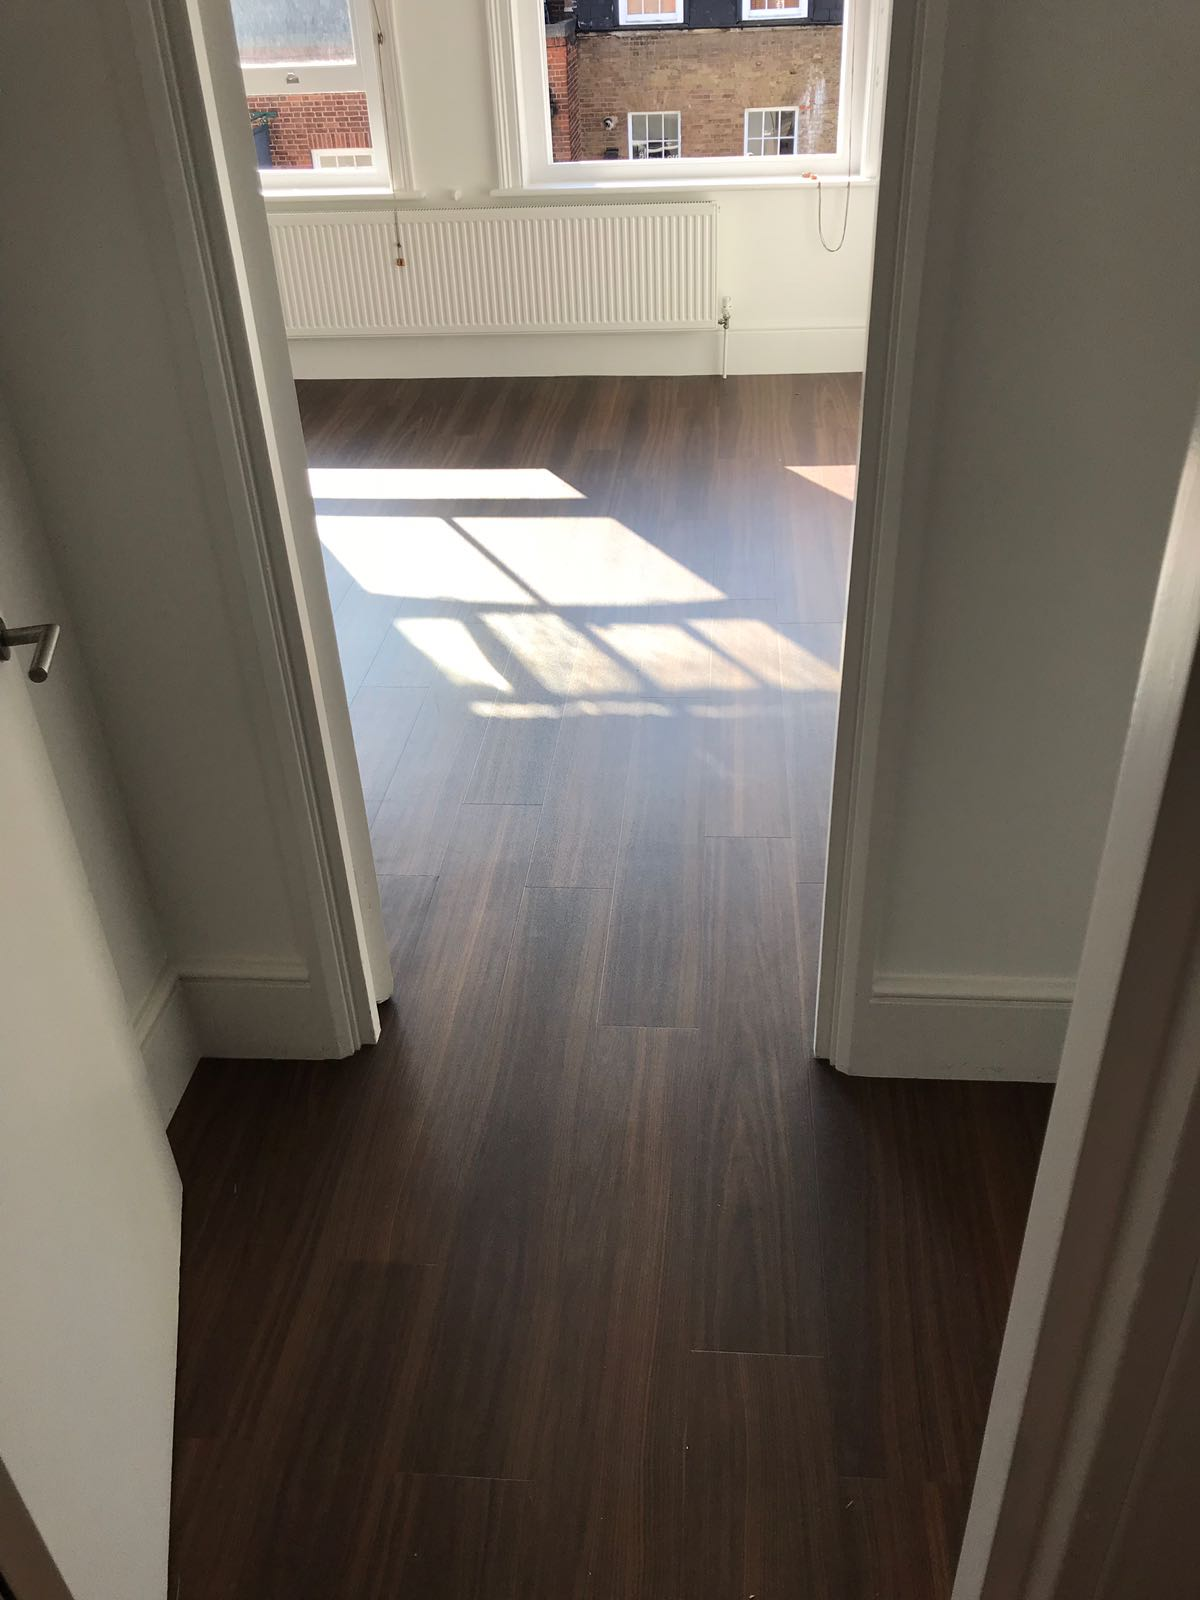 2018-04-24_Amtico Flooring Installed In Chelsea Residence (13)